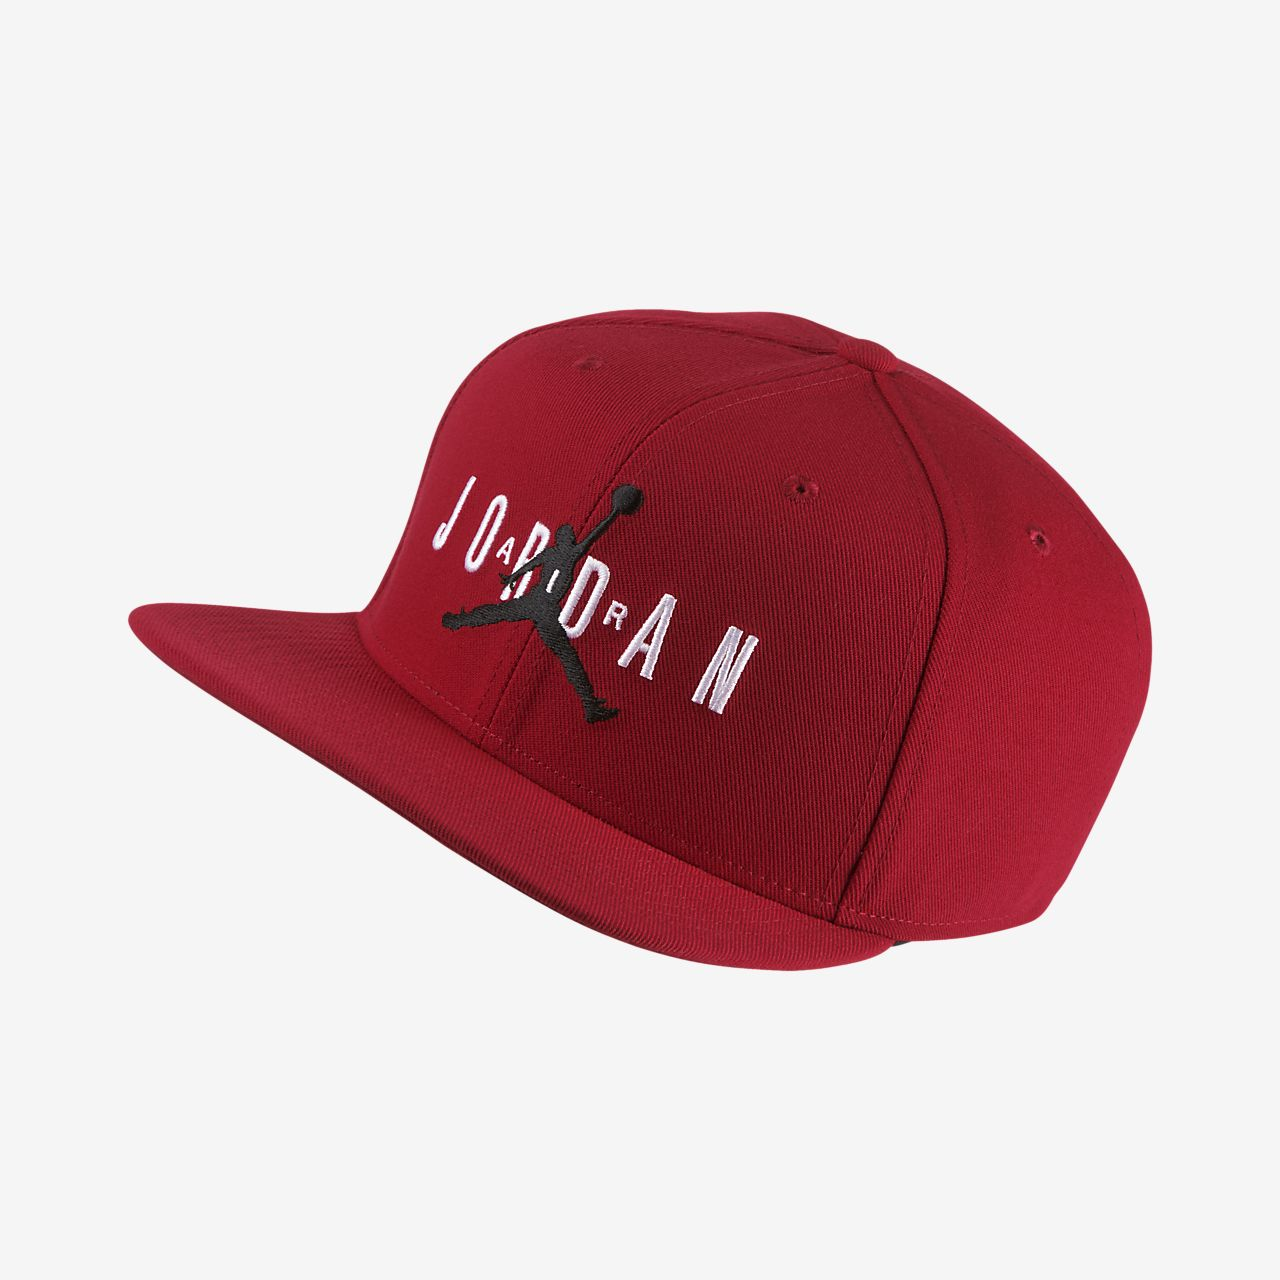 3ffc1084ed7 Jordan Pro Jumpman Air Adjustable Hat . Nike.com